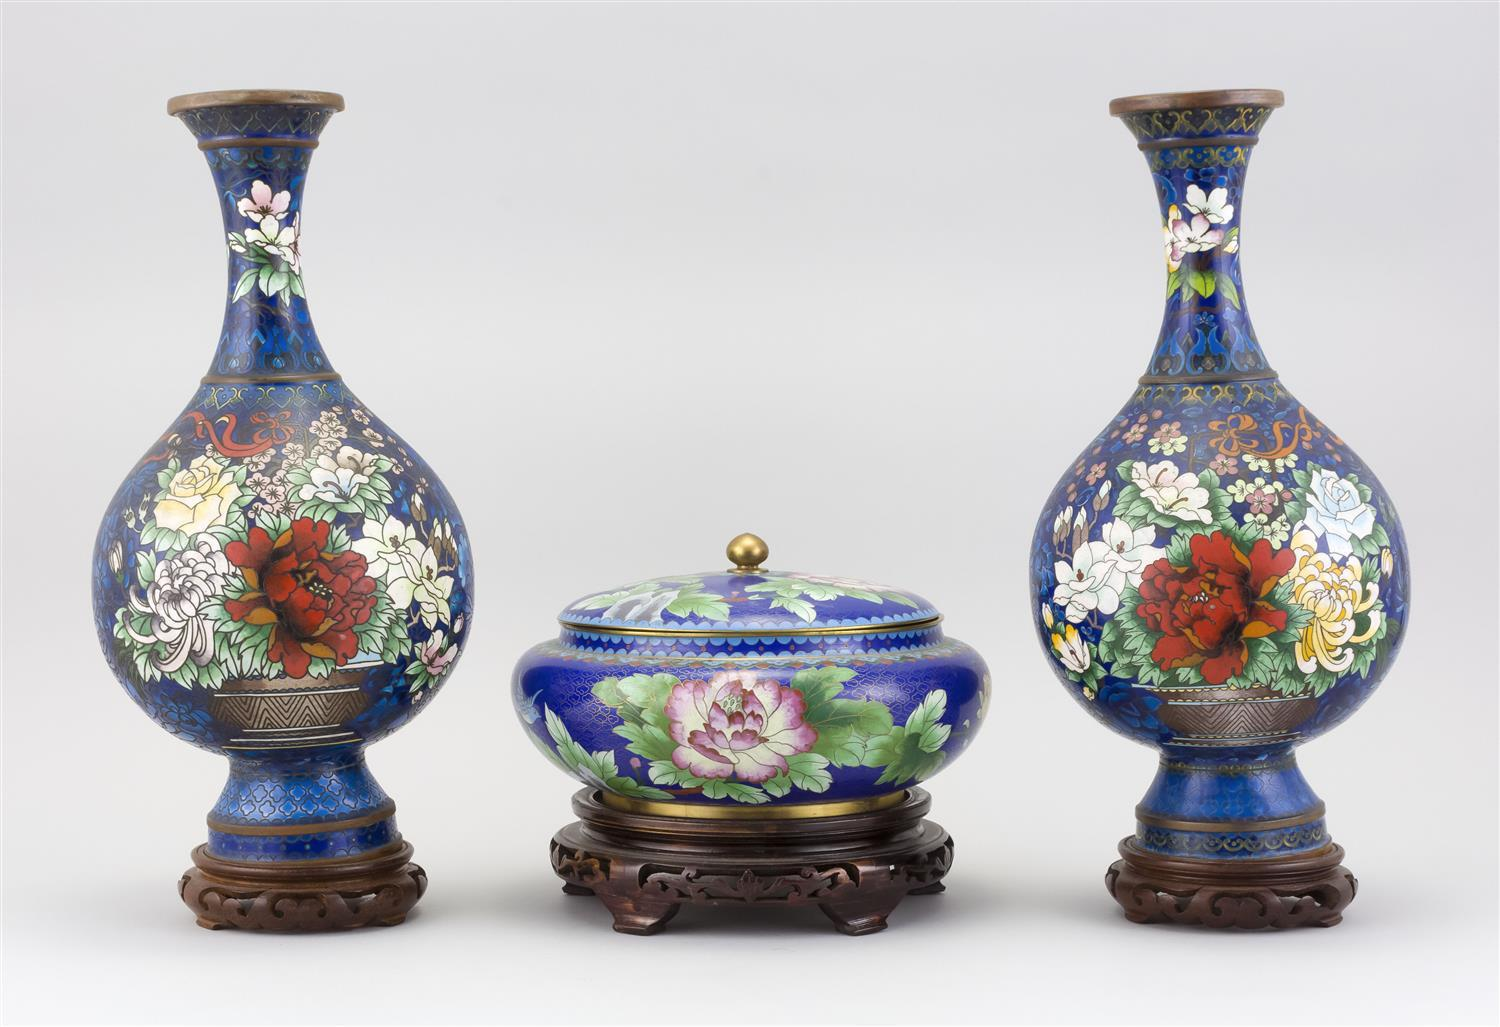 THREE PIECES OF CHINESE CLOISONNÉ ENAMEL A pair of vases with polychrome floral decoration on a blue ground, and a lidded bowl with...